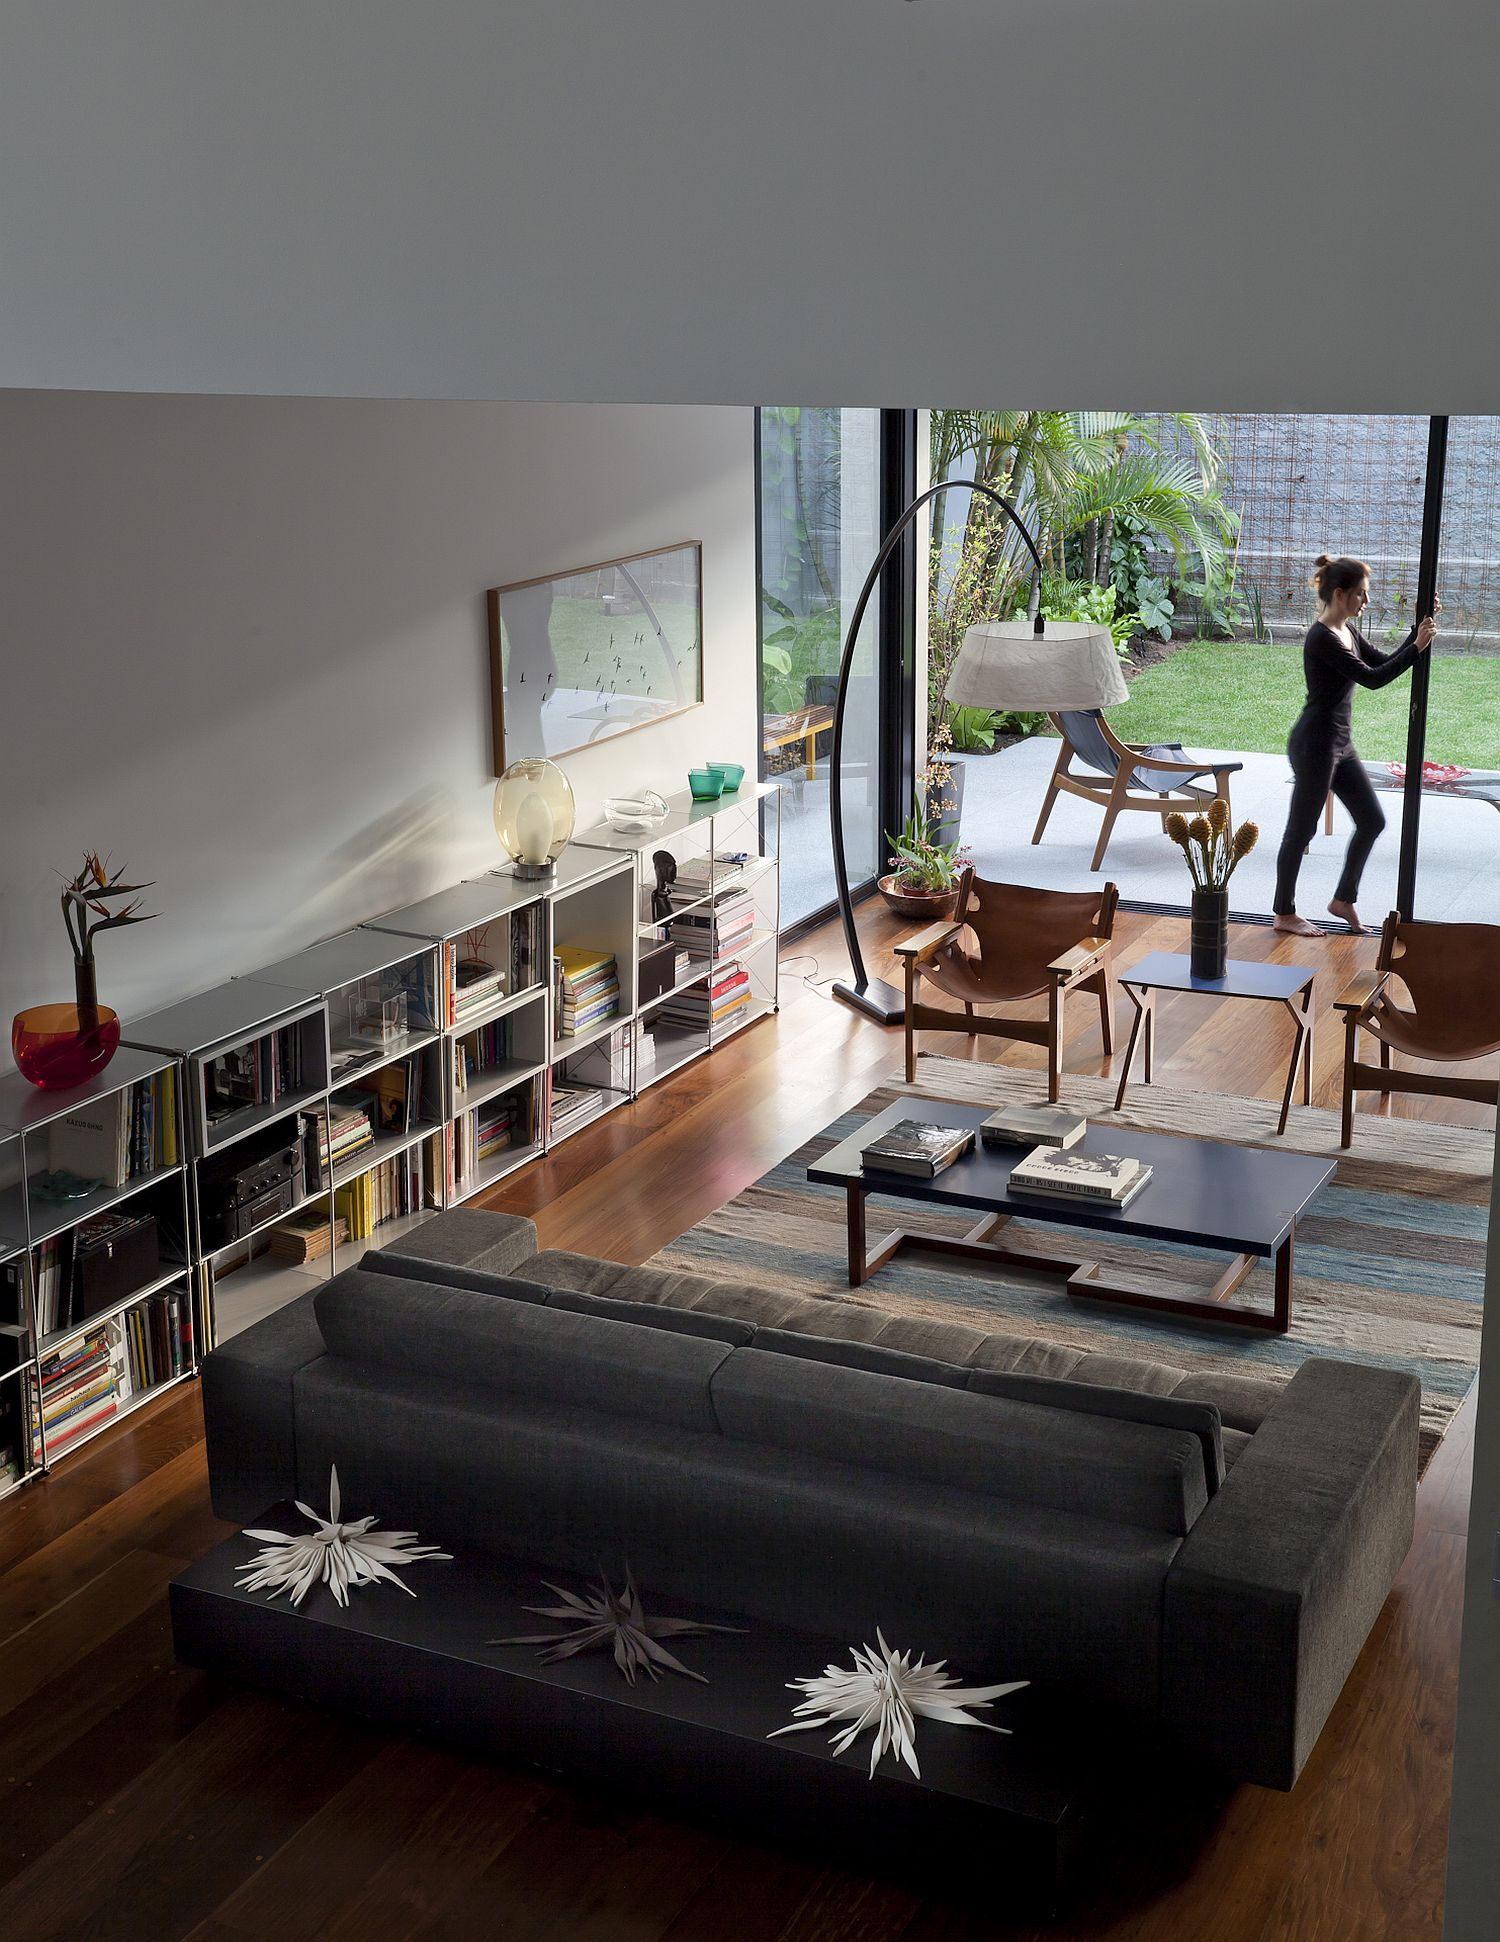 Renovated 1970 s Townhouse in S£o Paulo with Inspired Indoor Garden